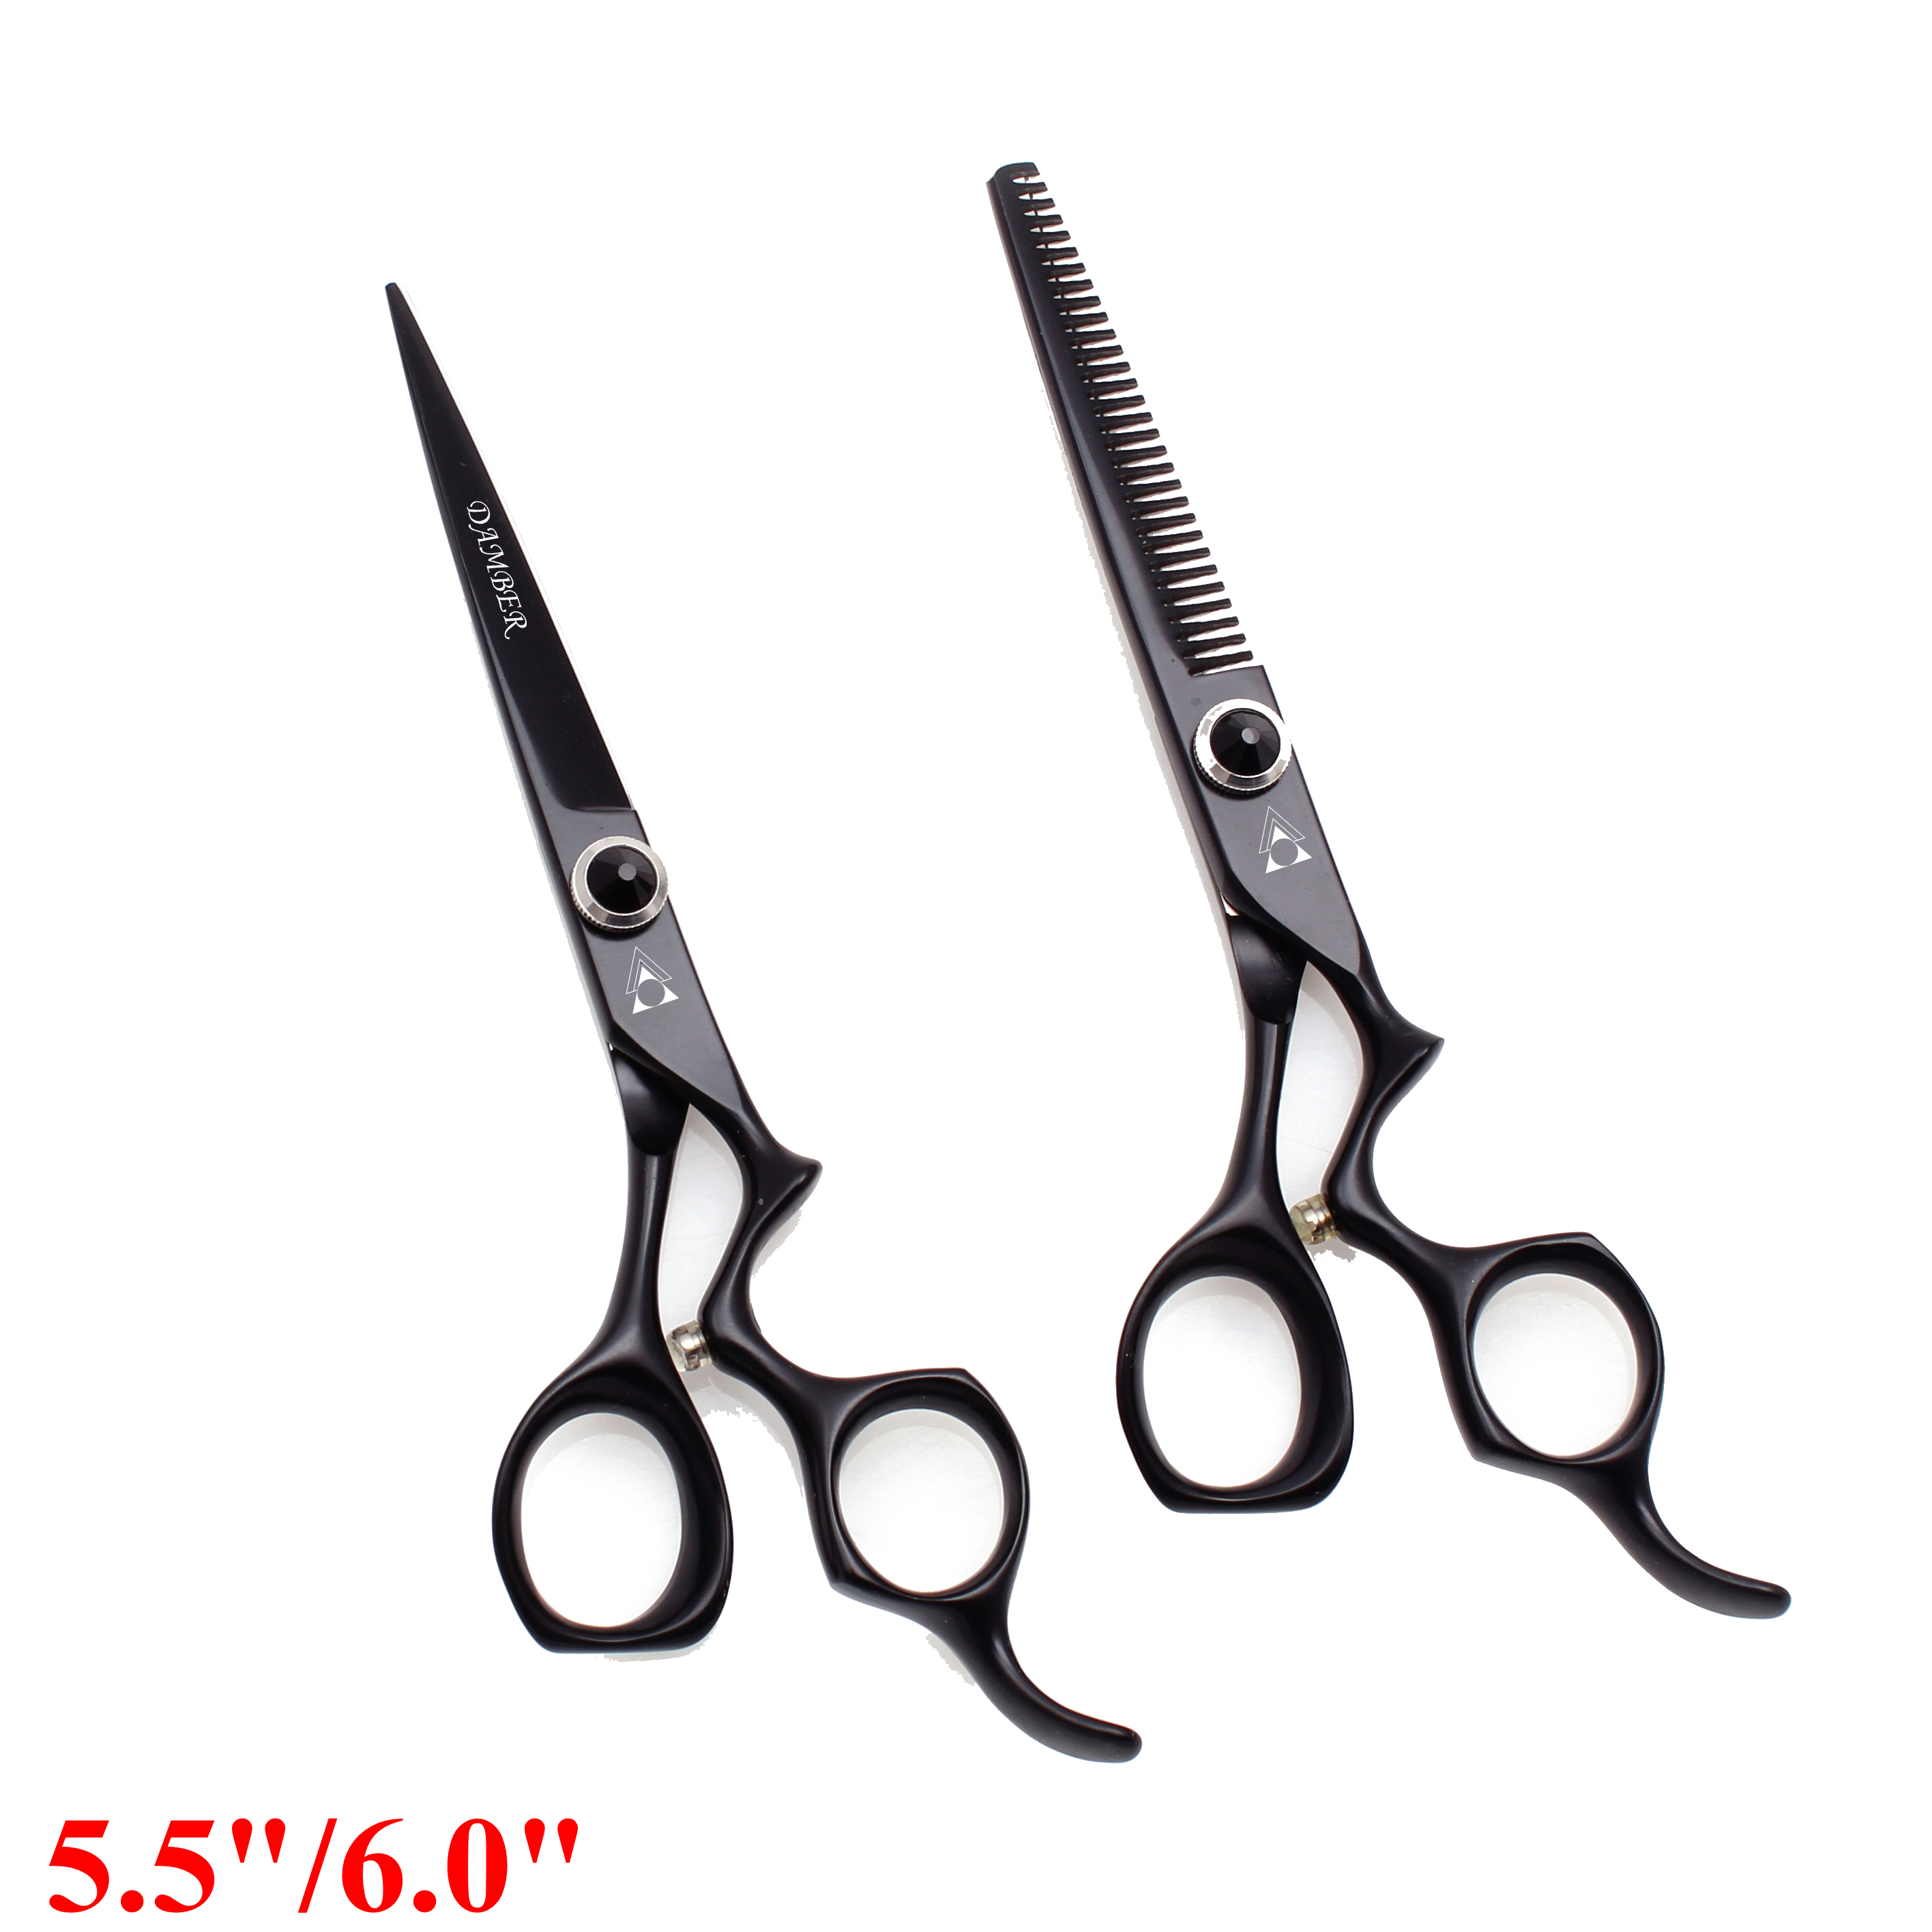 5.5 6.0 Hair Cutting Thinning Scissors Professional High Quality Barber Scissors Hairdressing Scissors 440c Japanese Steel 9016#